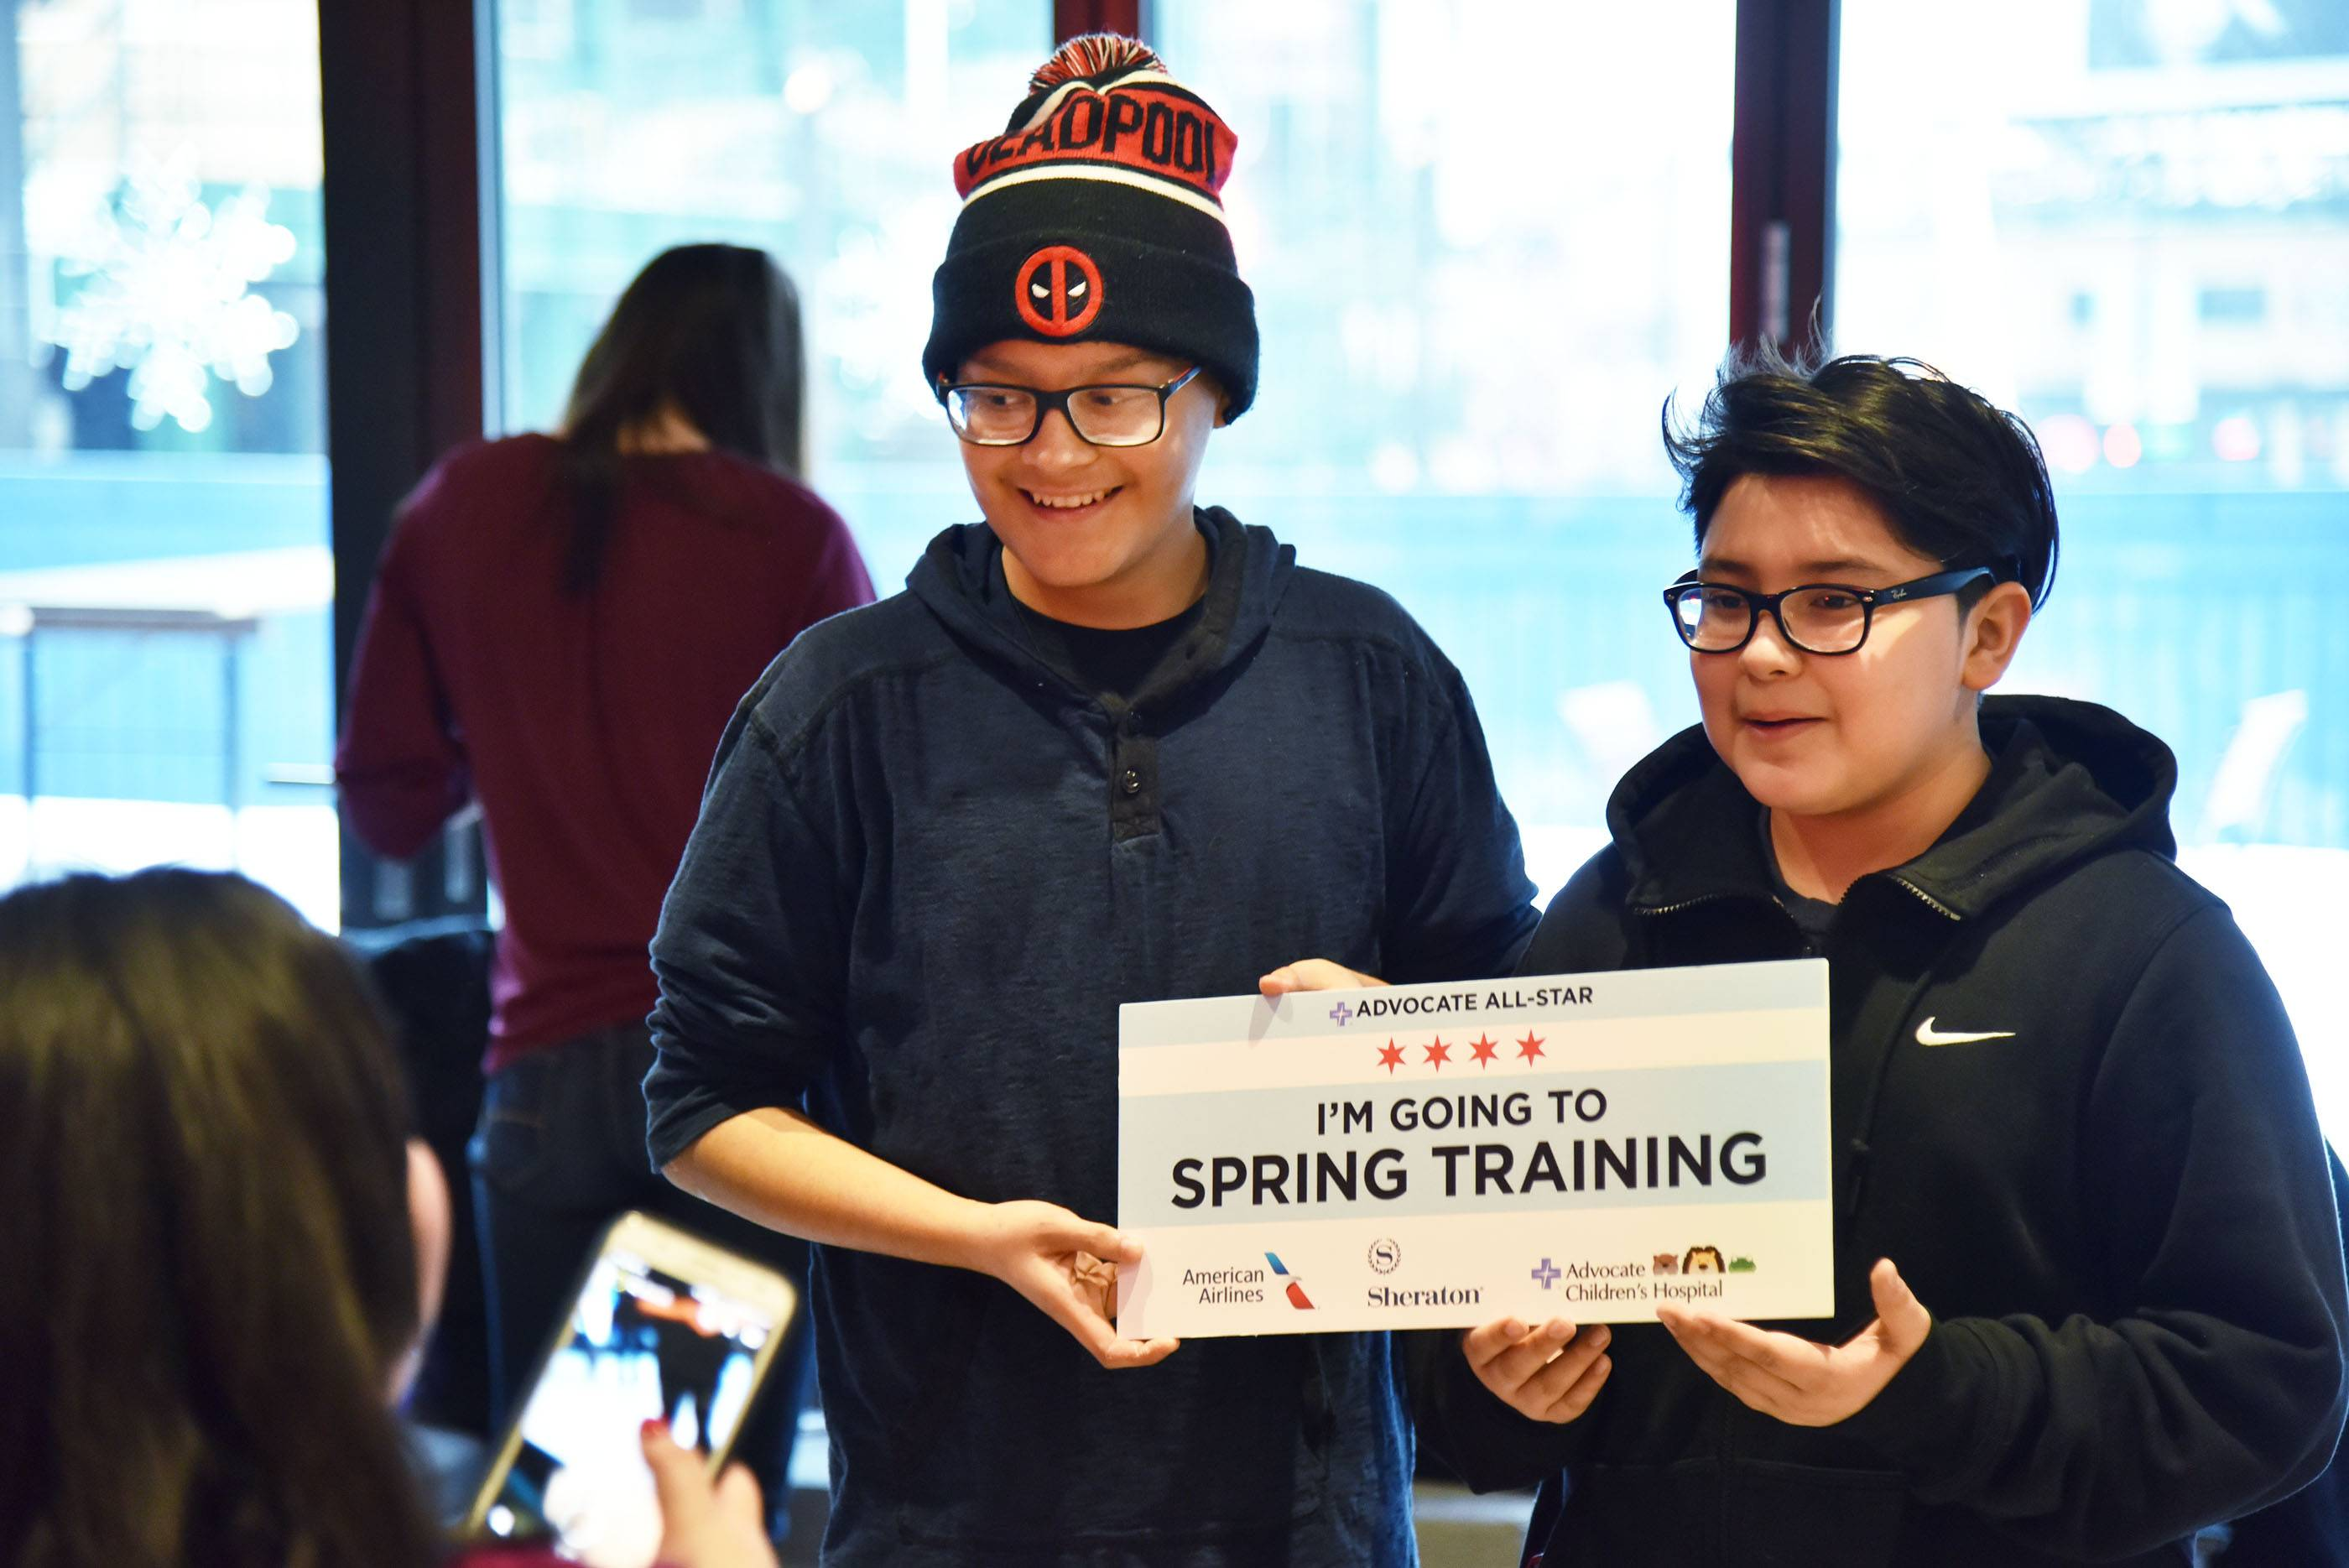 Jonathan Olmos, 16, left, of Des Plaines and his friend Julian Garcia, 12, learned Wednesday at Wrigley Field they were given a free trip to see the Chicago Cubs in spring training in Arizona.